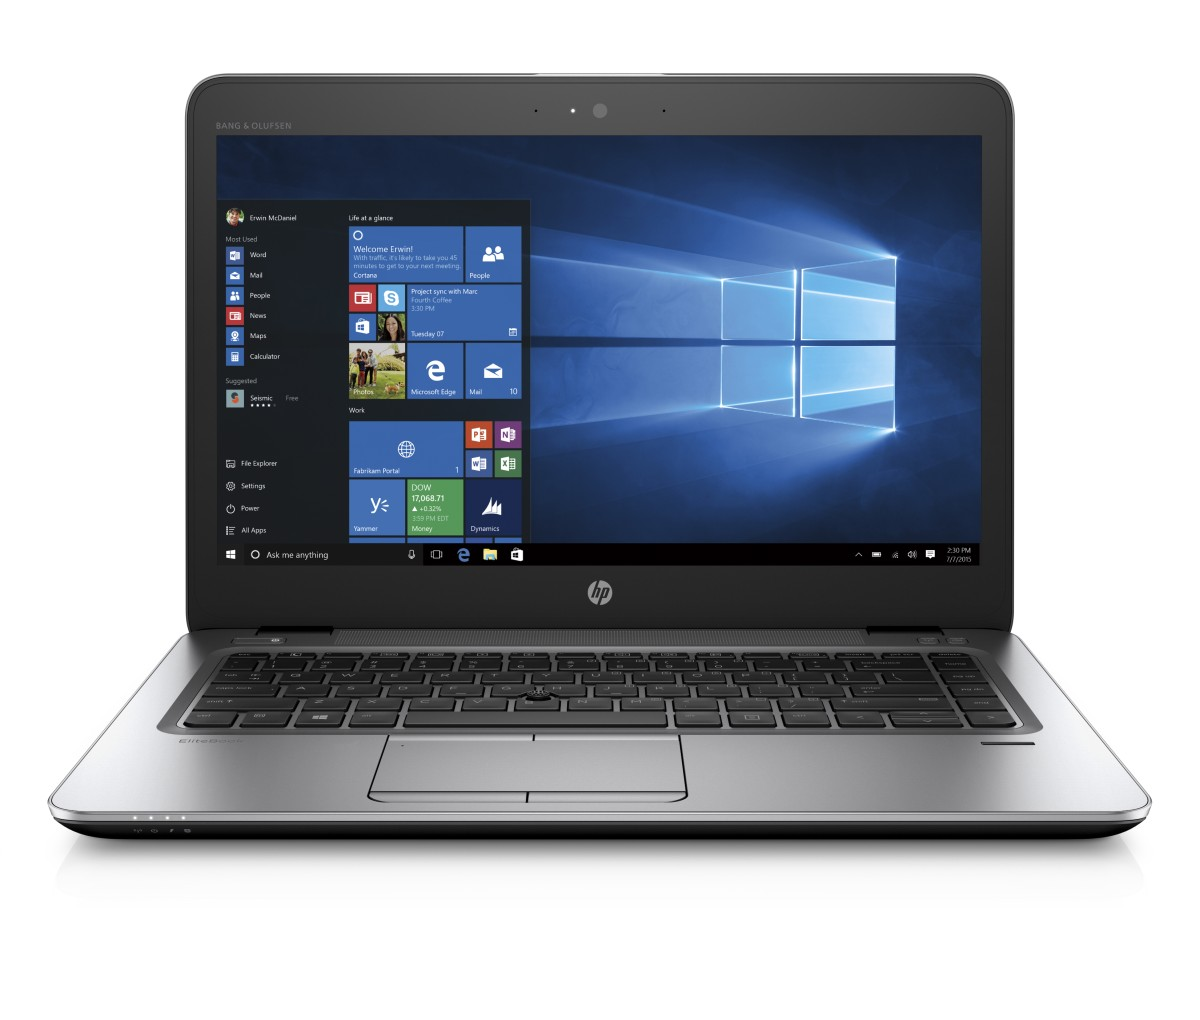 "HP EliteBook 840 G4 i5-7200U/4GB/256GB SSD + 2,5'' slot/14"" FHD/ backlit keyb /Win 10 Pro"